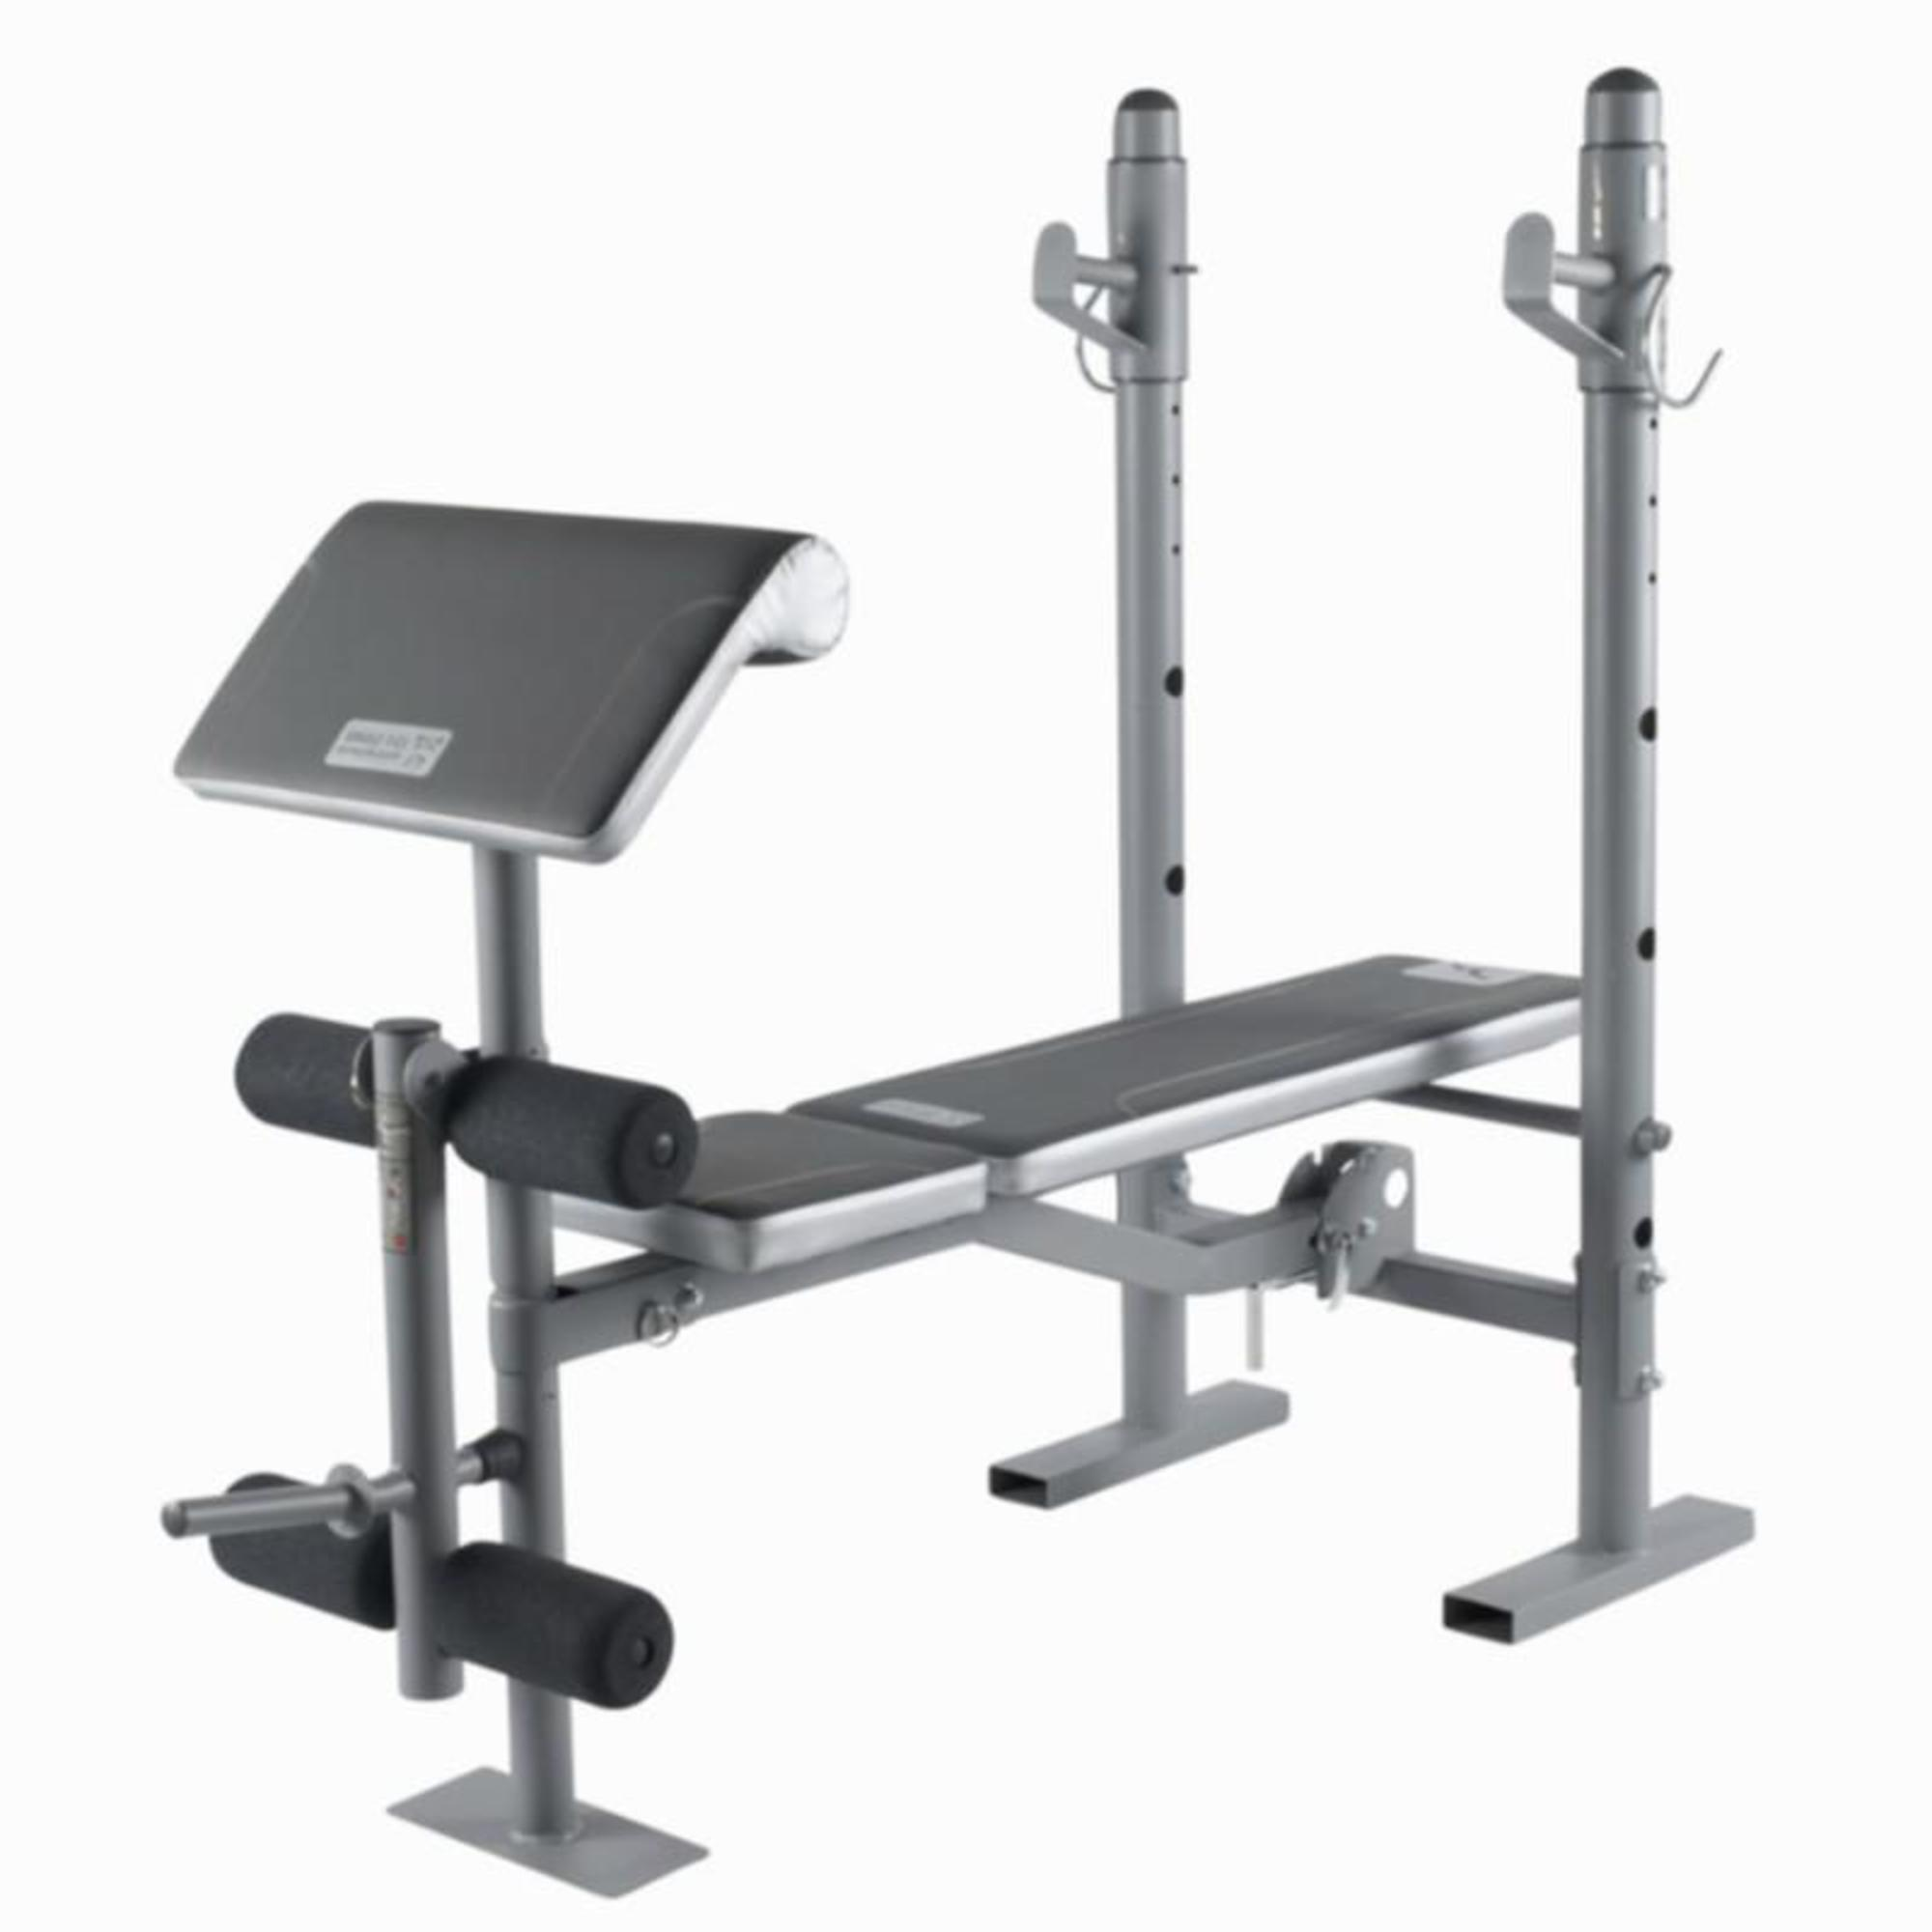 banc de musculation bm210 domyos by decathlon